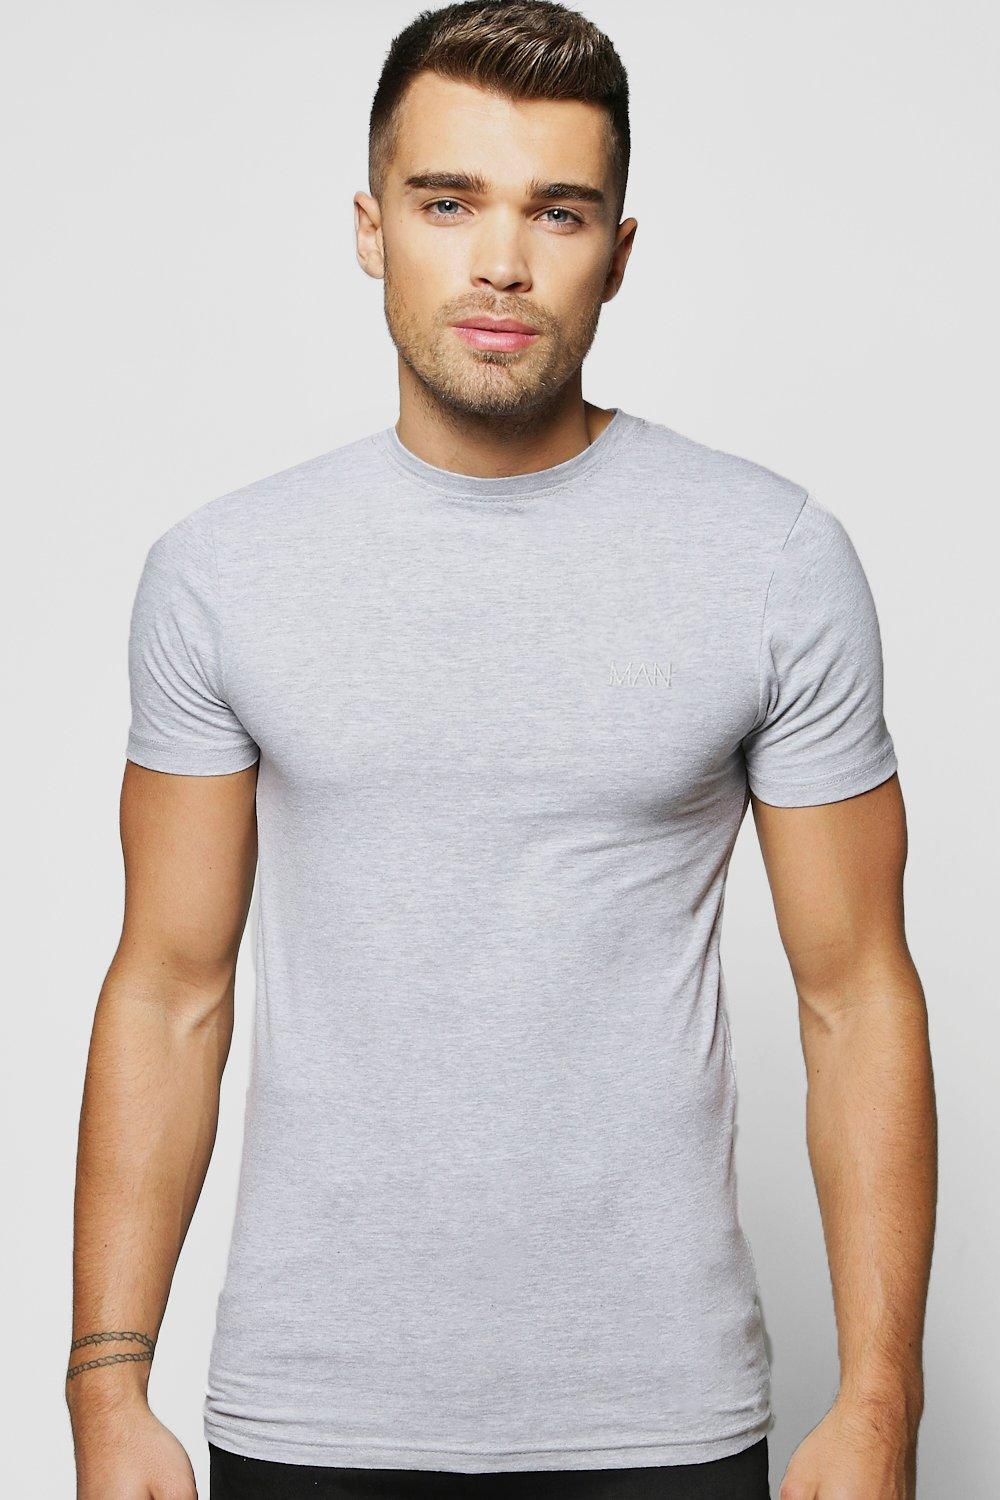 deca1d7a65a Short Sleeve MAN Muscle Fit T-Shirt | Boohoo